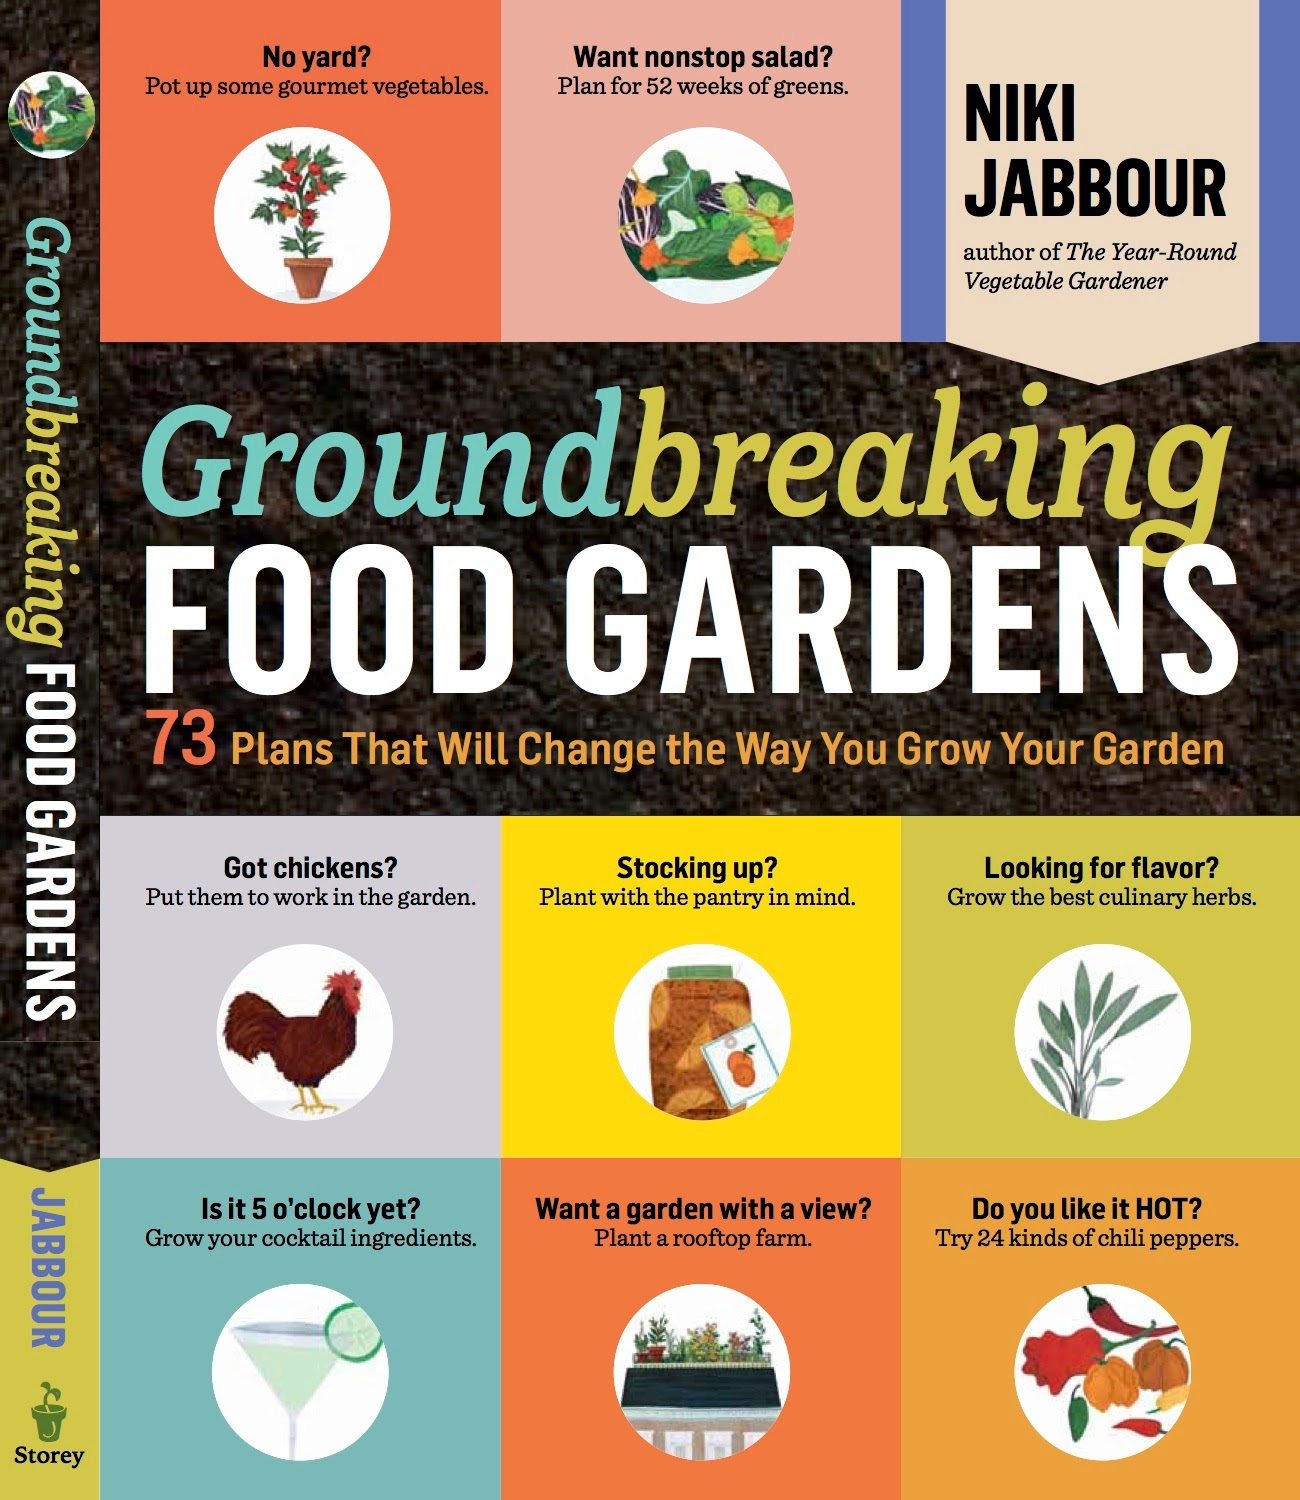 Groundbreaking Food Gardens reviews in the LA Times!